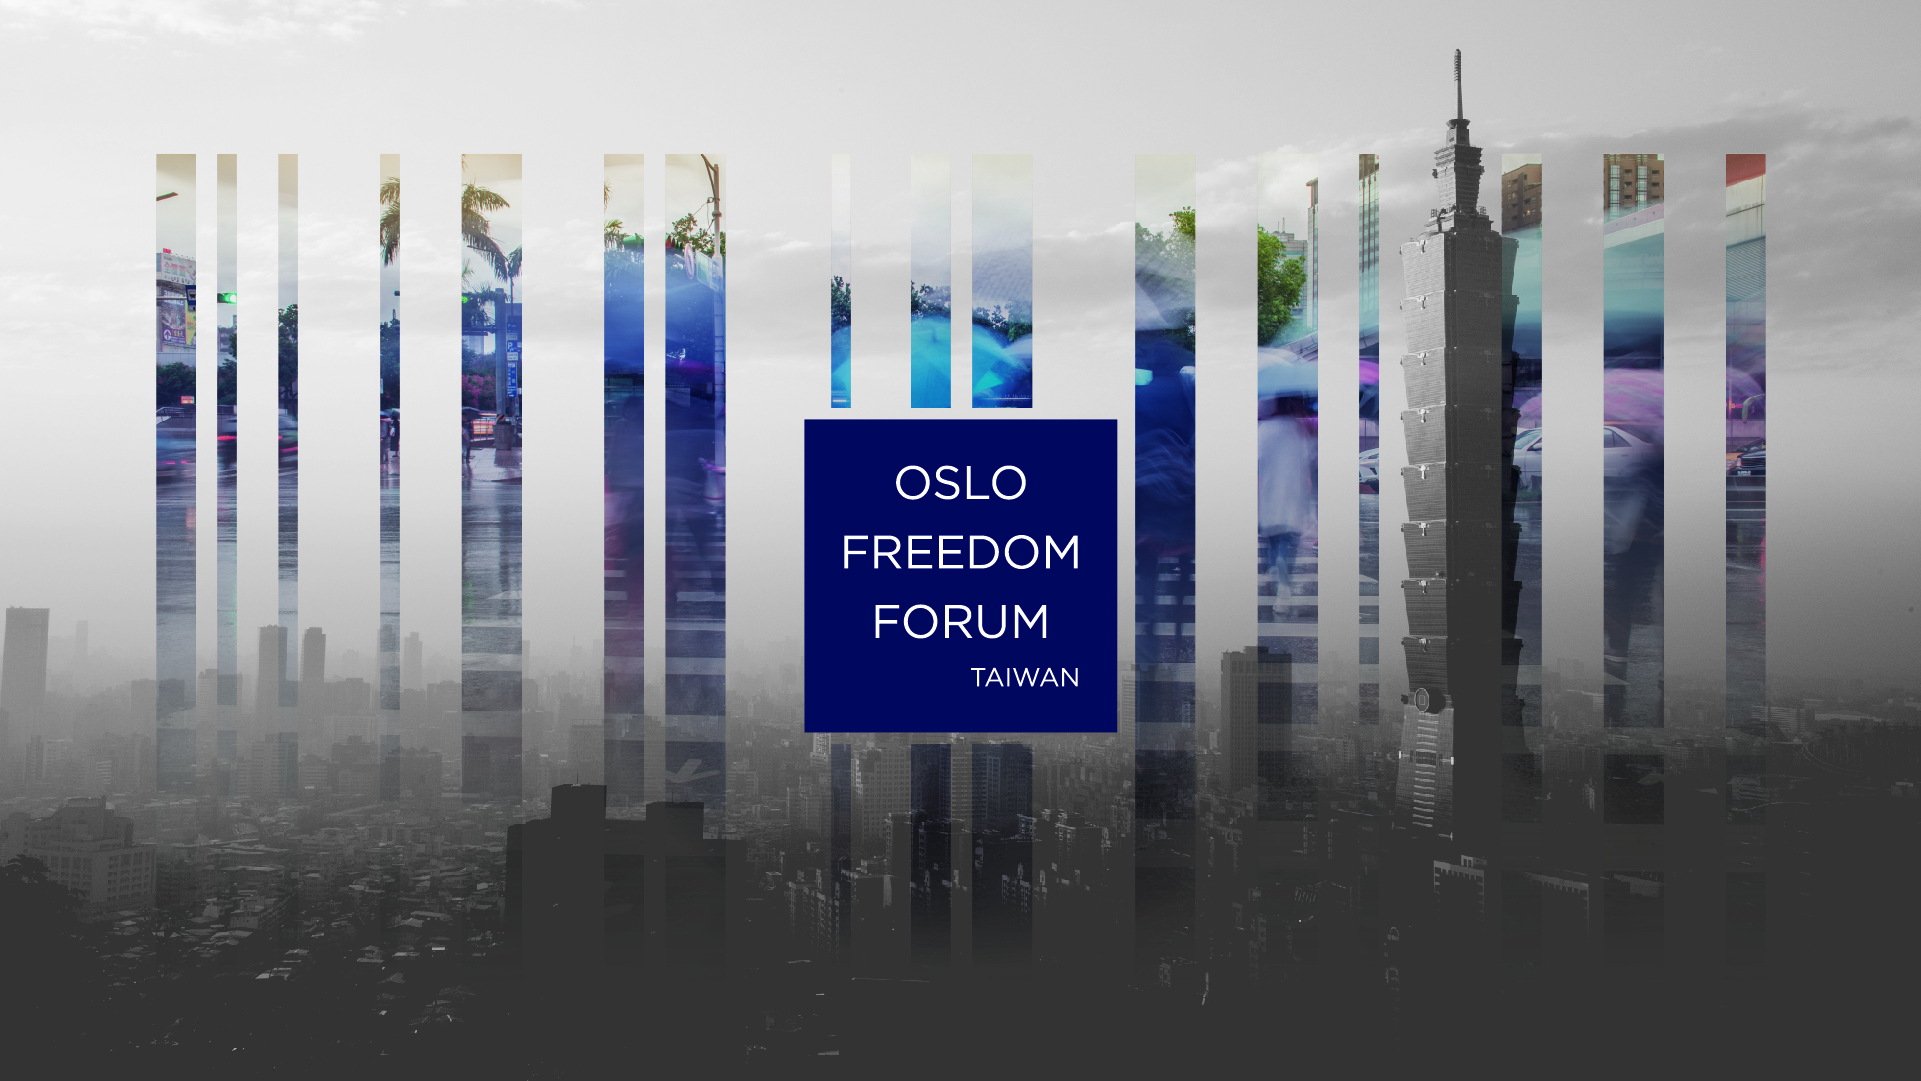 Oslo Freedom Forum Taiwan 2018